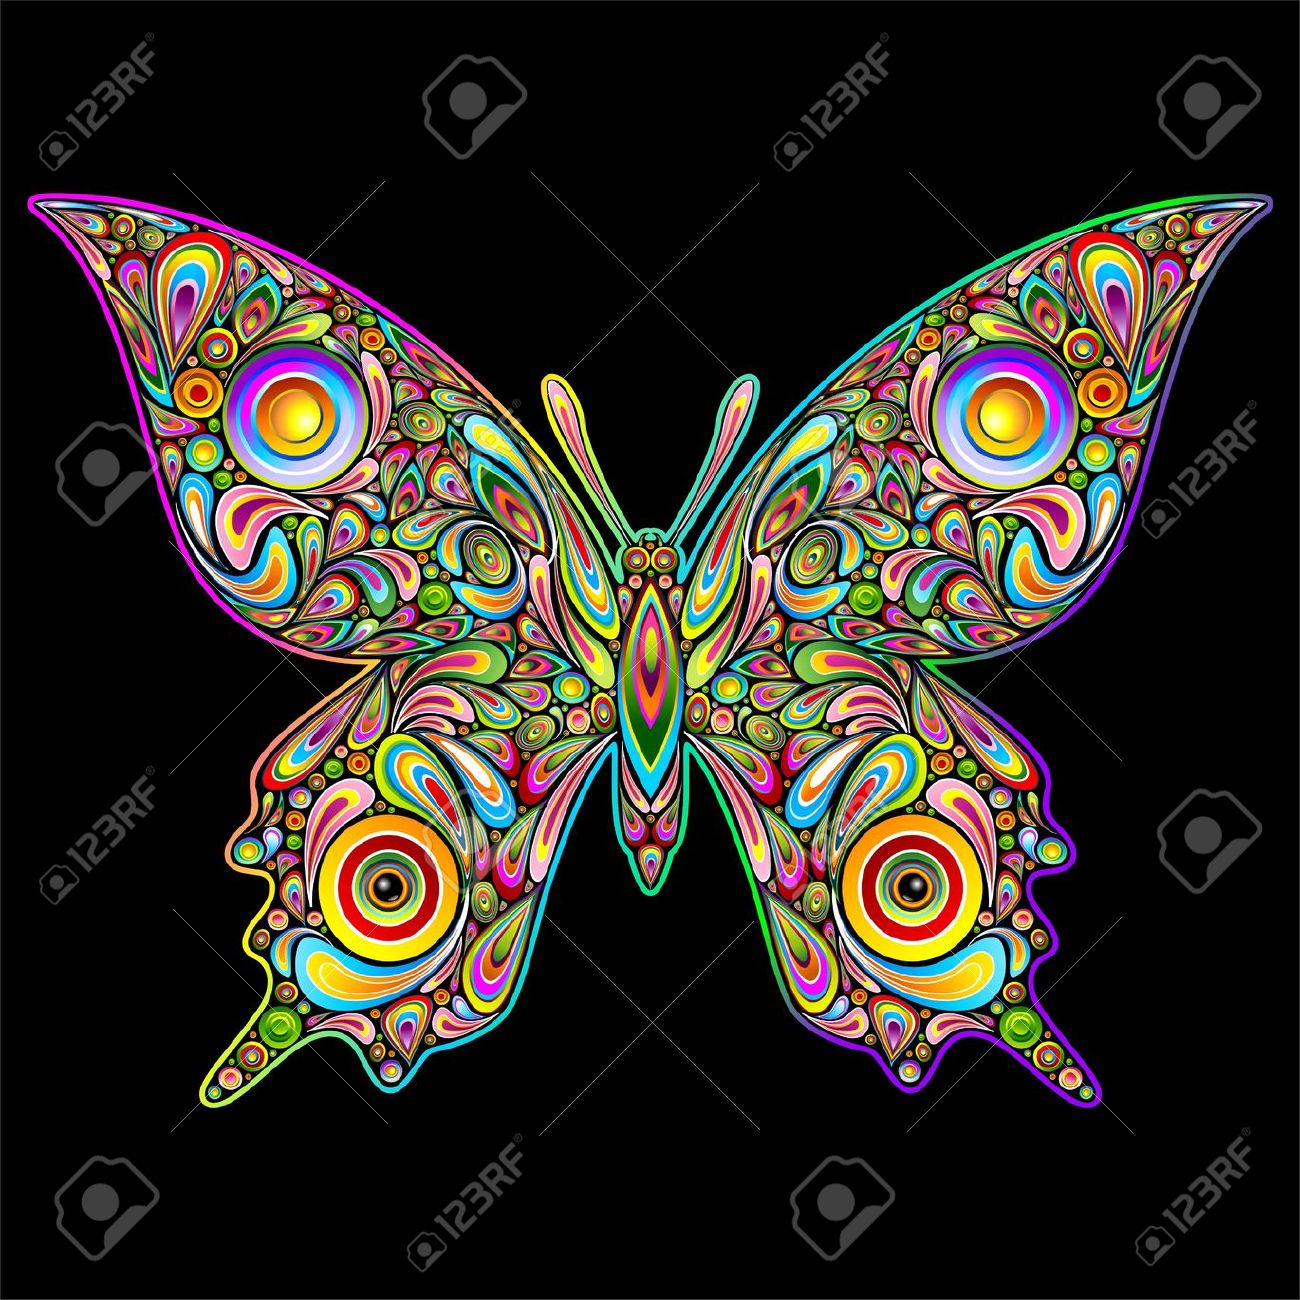 Moth clipart psychedelic #7